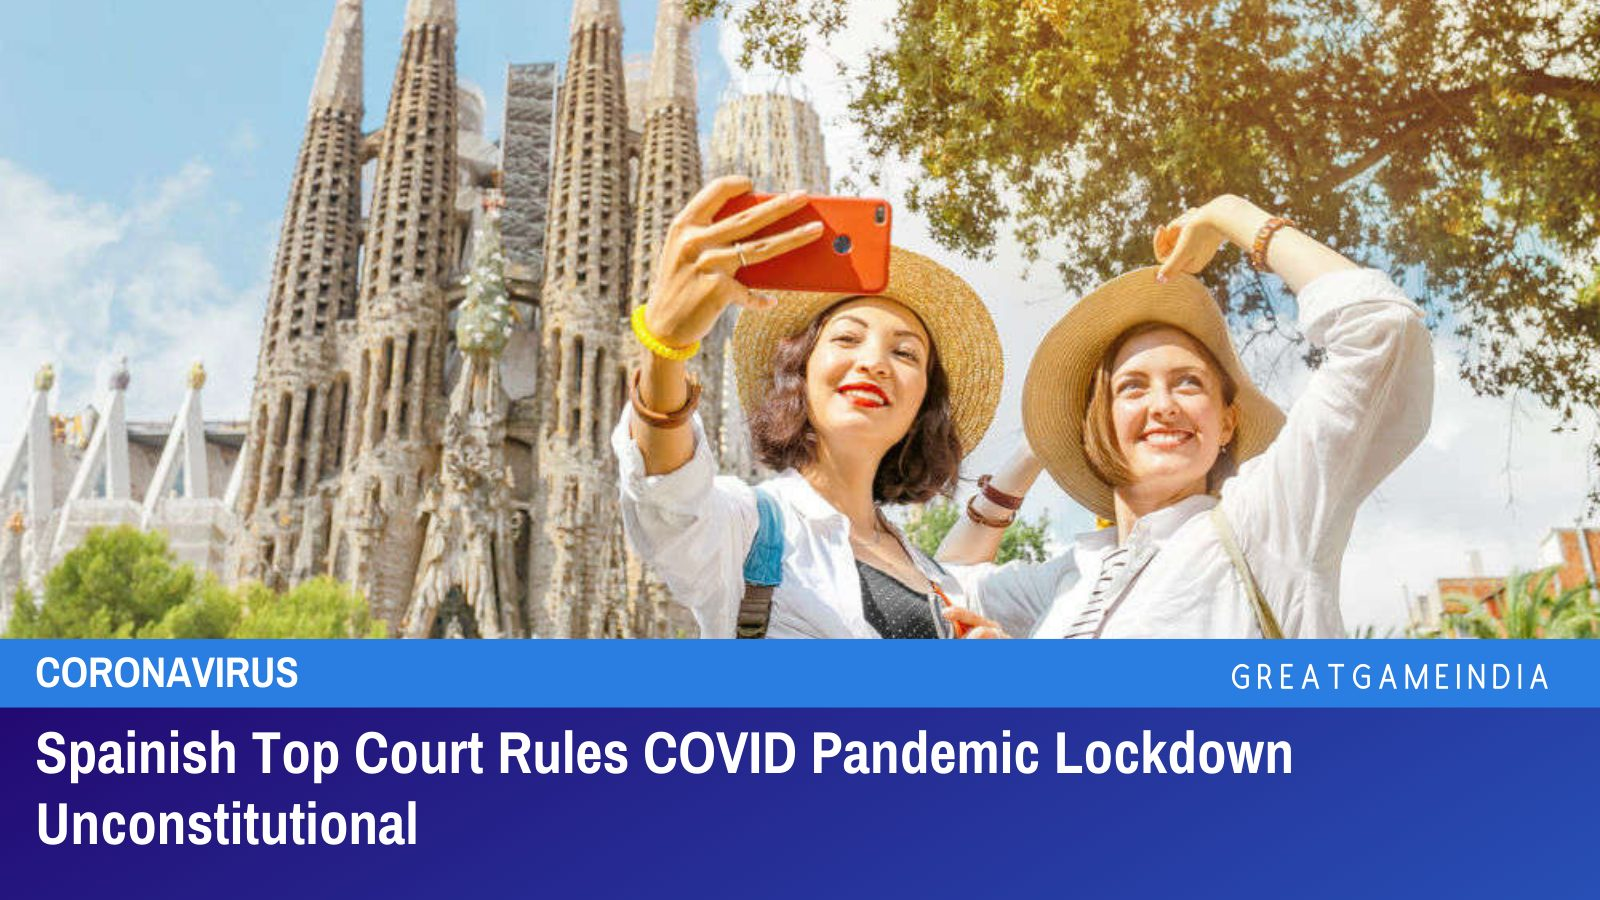 Spainish Top Court Rules COVID Pandemic Lockdown Unconstitutional